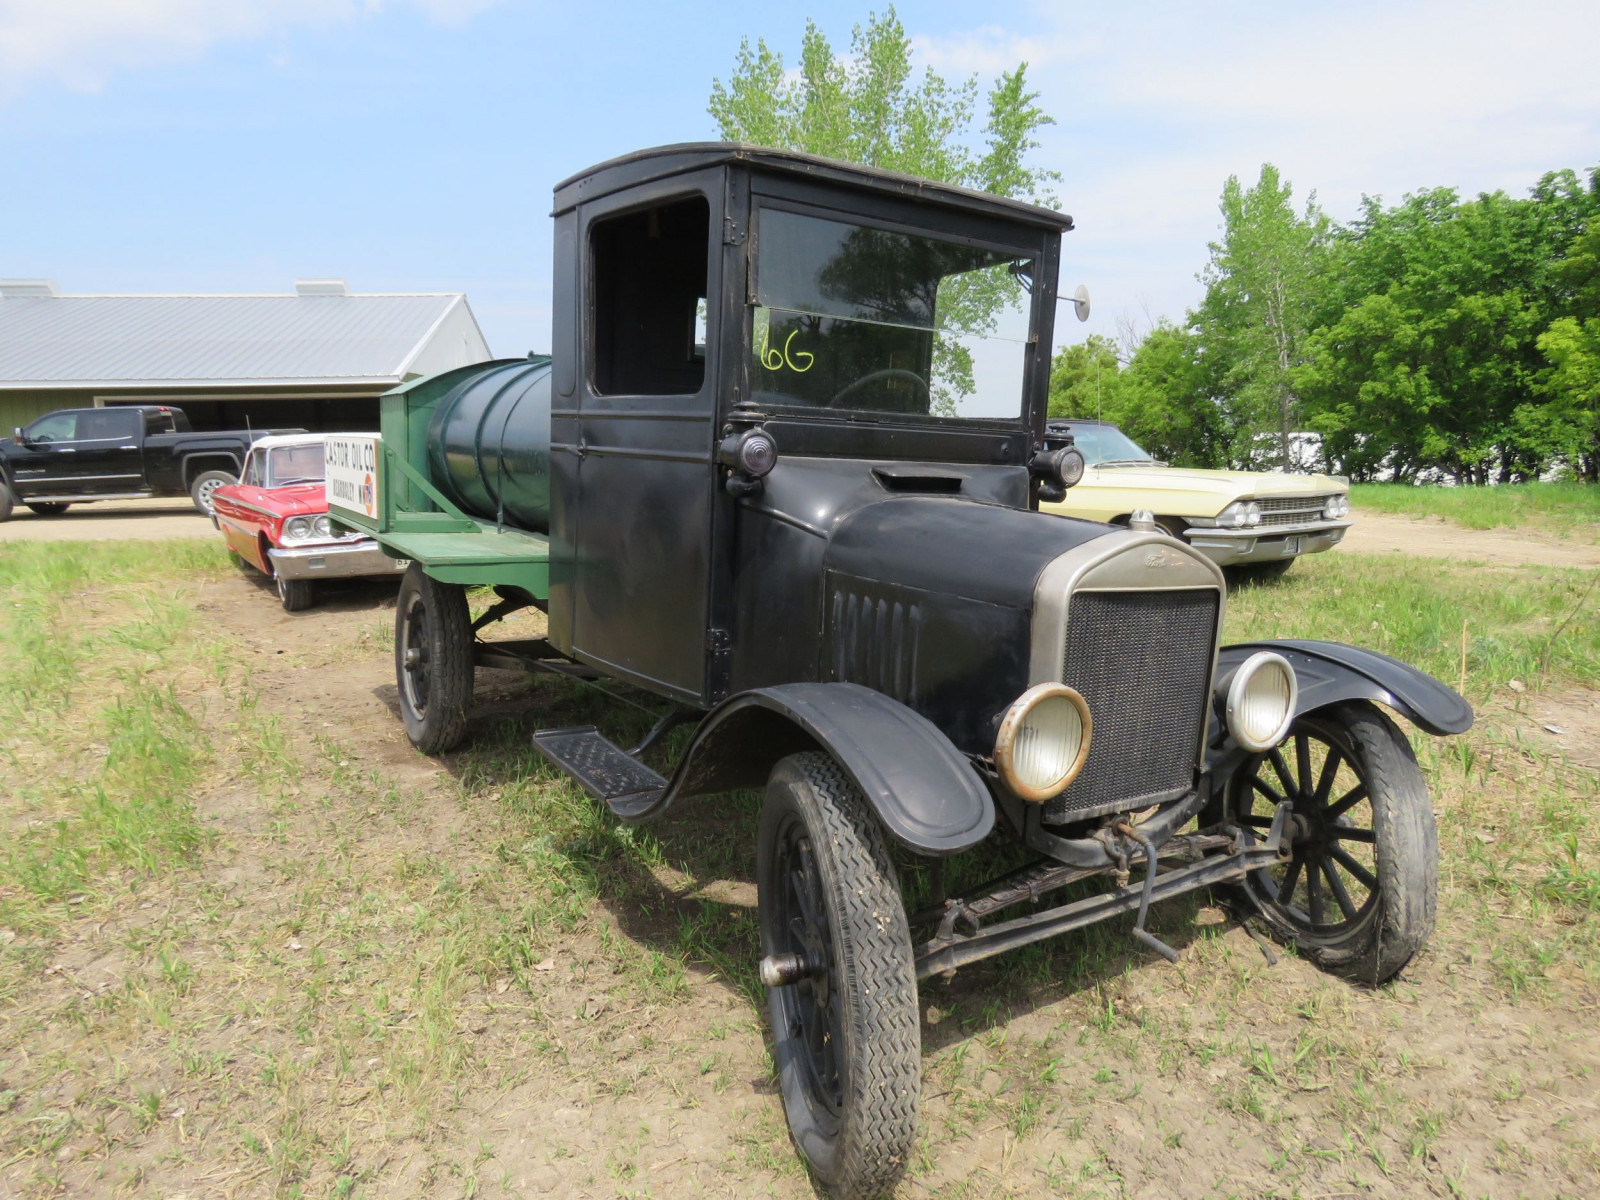 1924 Ford Model T Gas Truck - Image 1